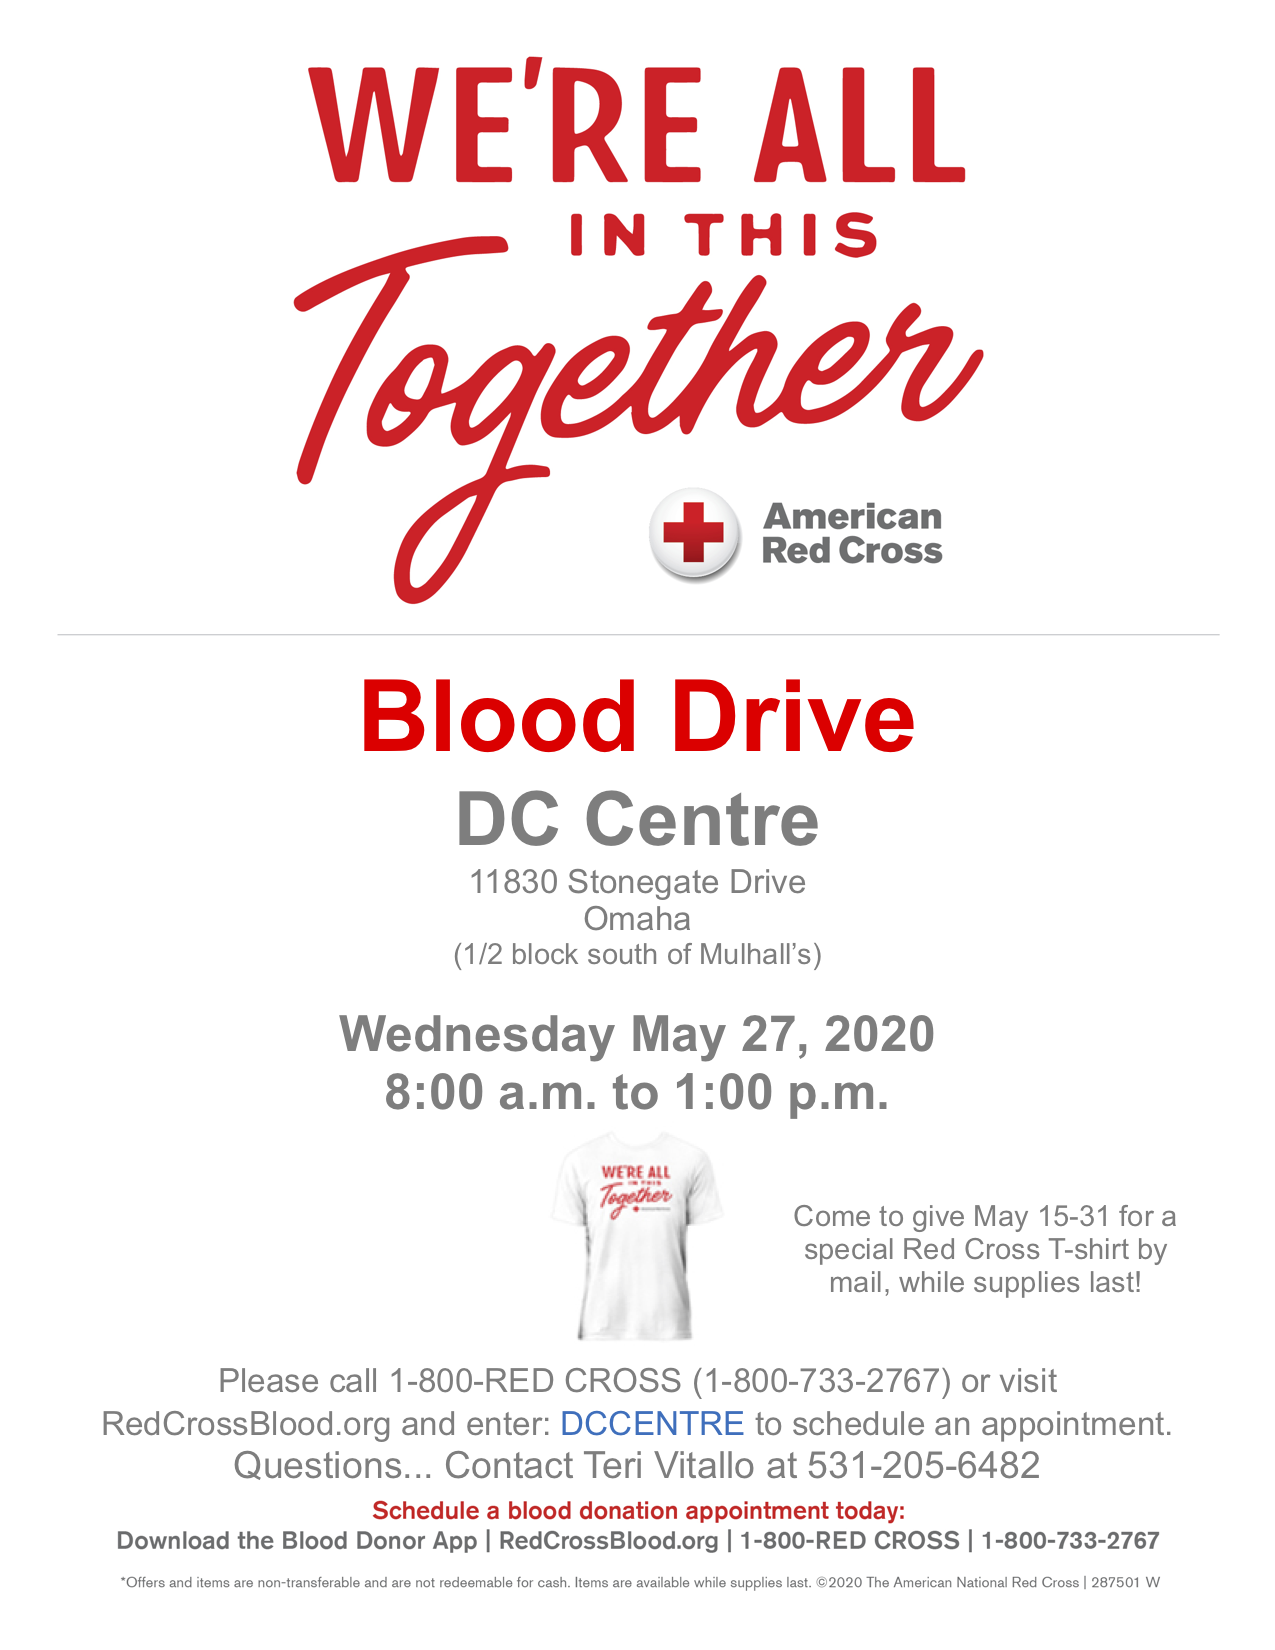 Blood Drive at DC Centre Banquet Facility